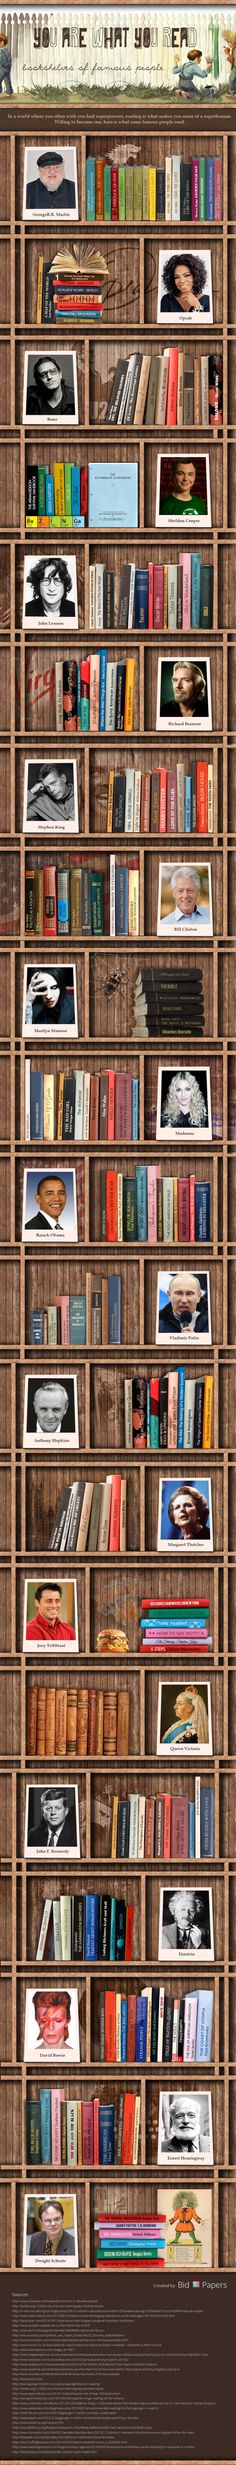 Favorite books of famous people: John Lennon, George R.R. Martin, Oprah Winfrey, Barack Obama, Queen Victoria, among others, Putin as well.